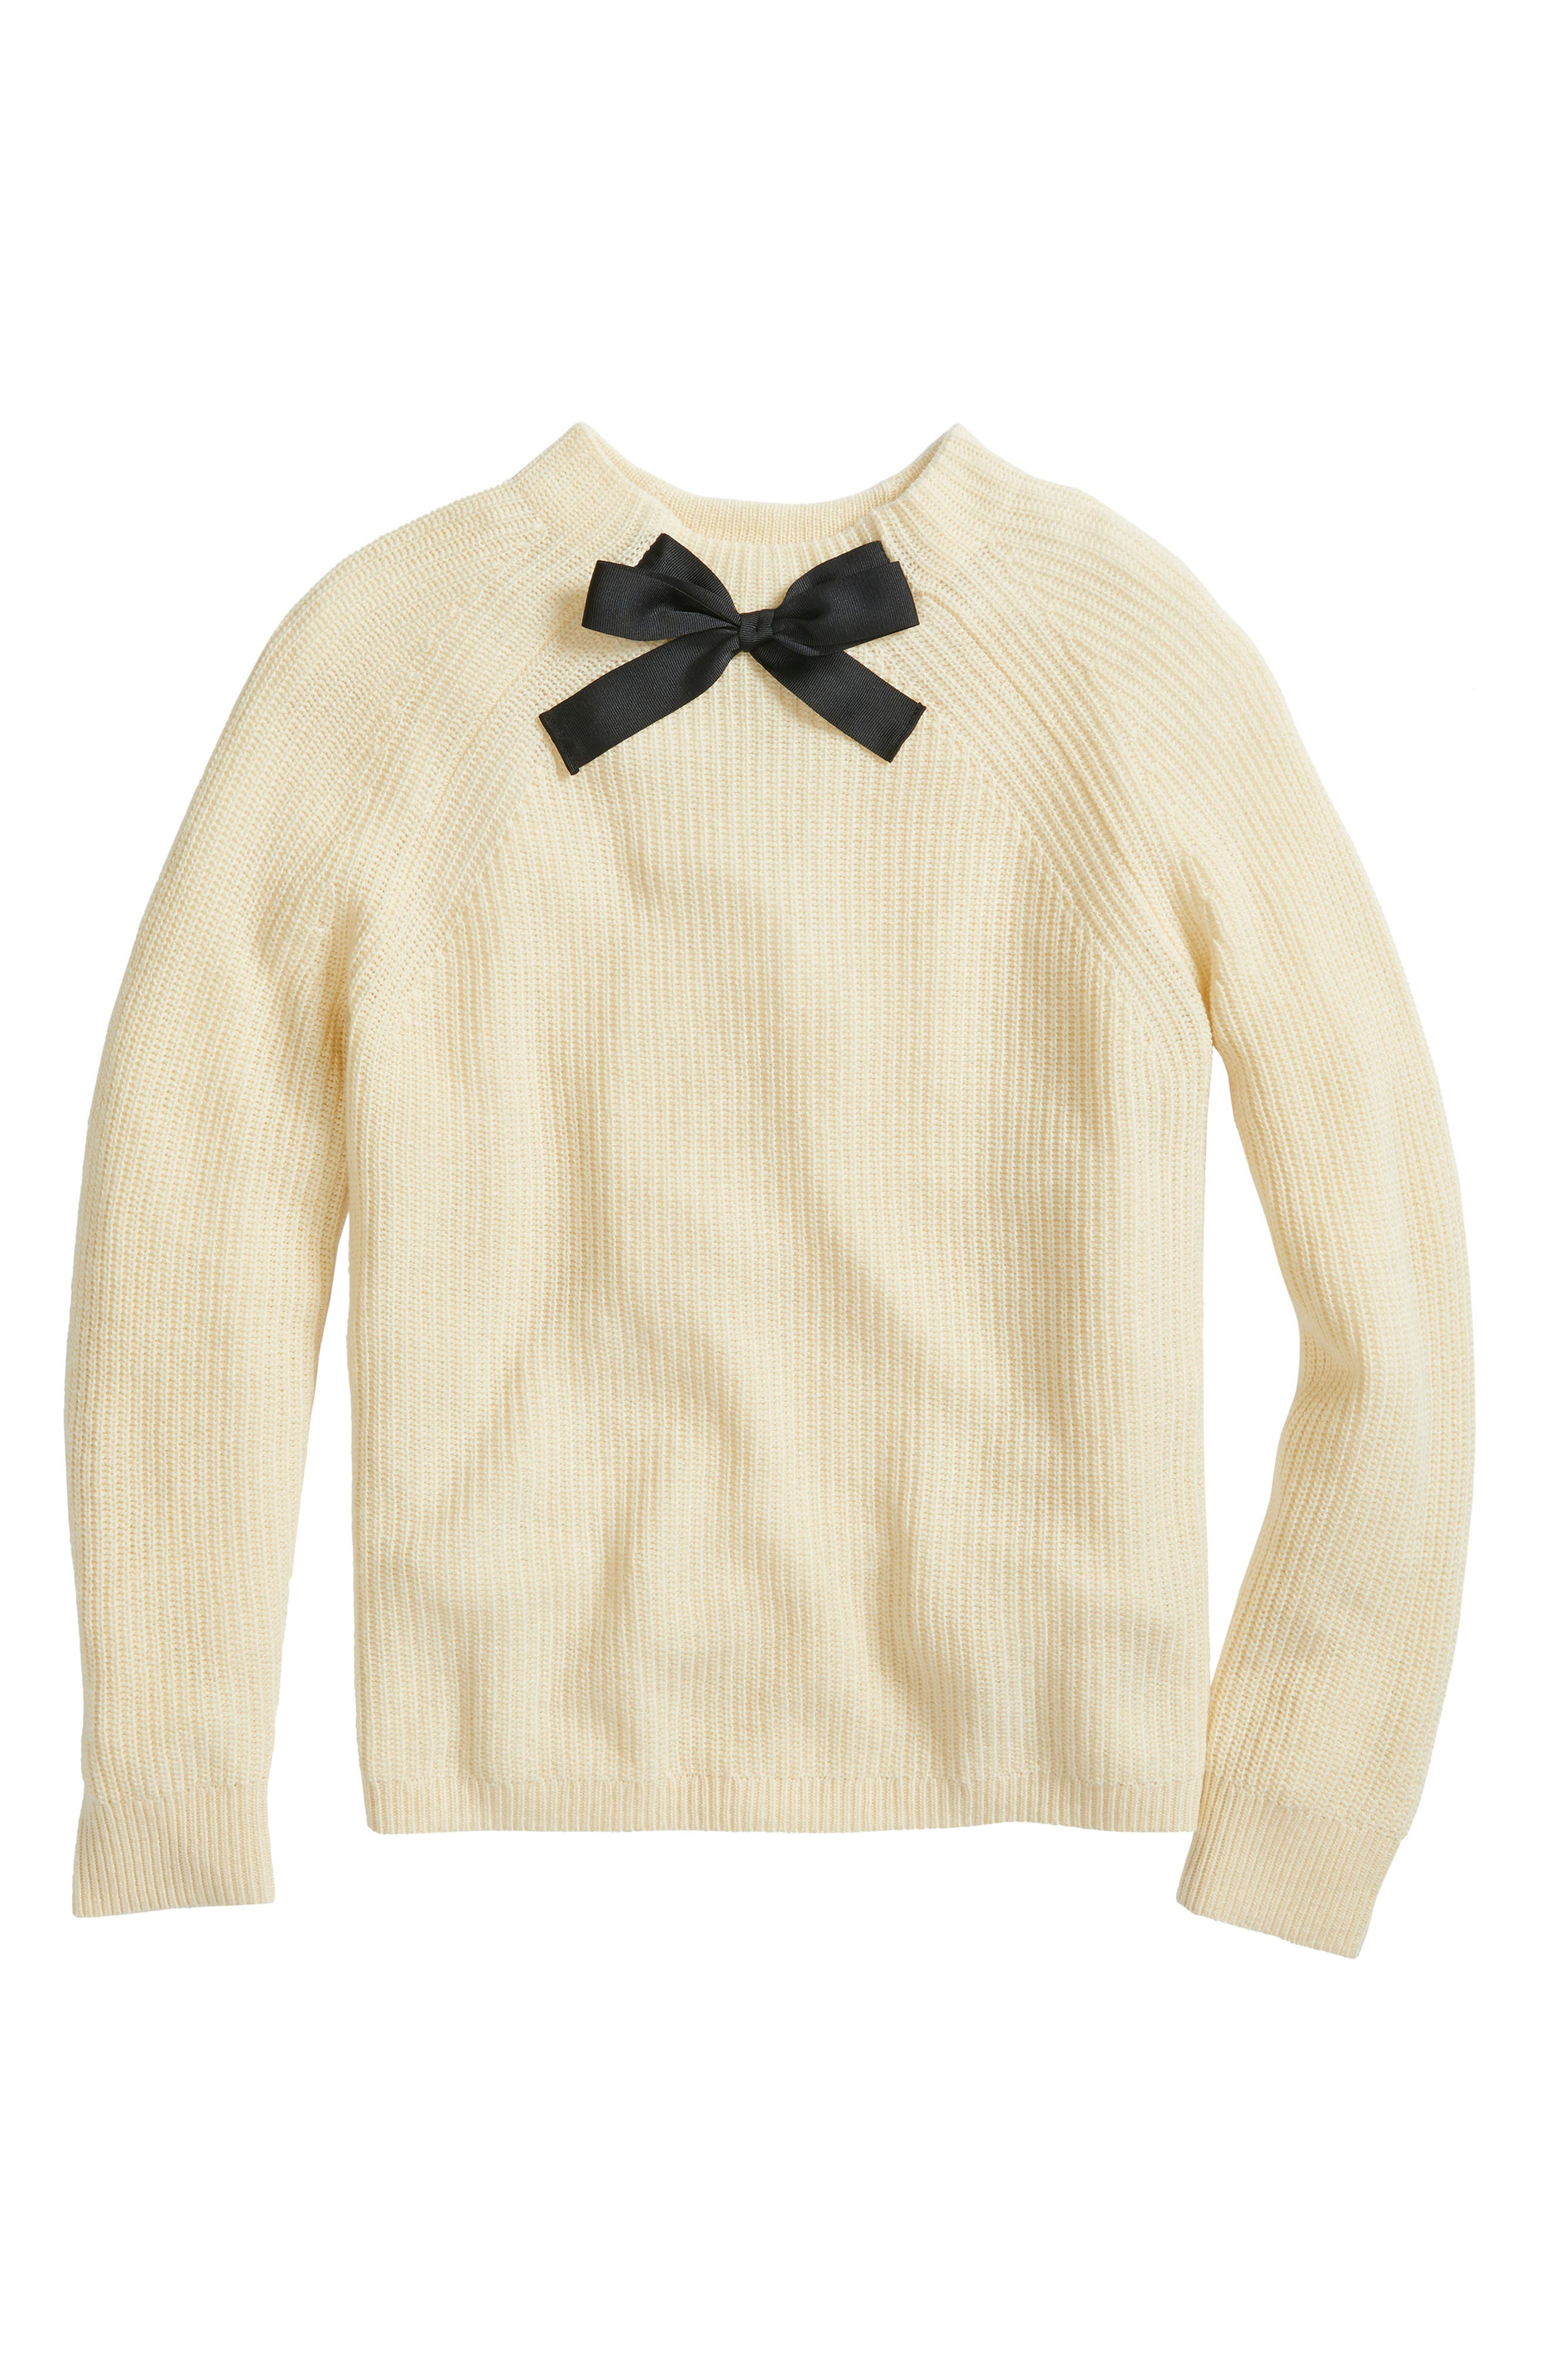 Gayle Tie Neck Sweater,                             Alternate thumbnail 17, color,